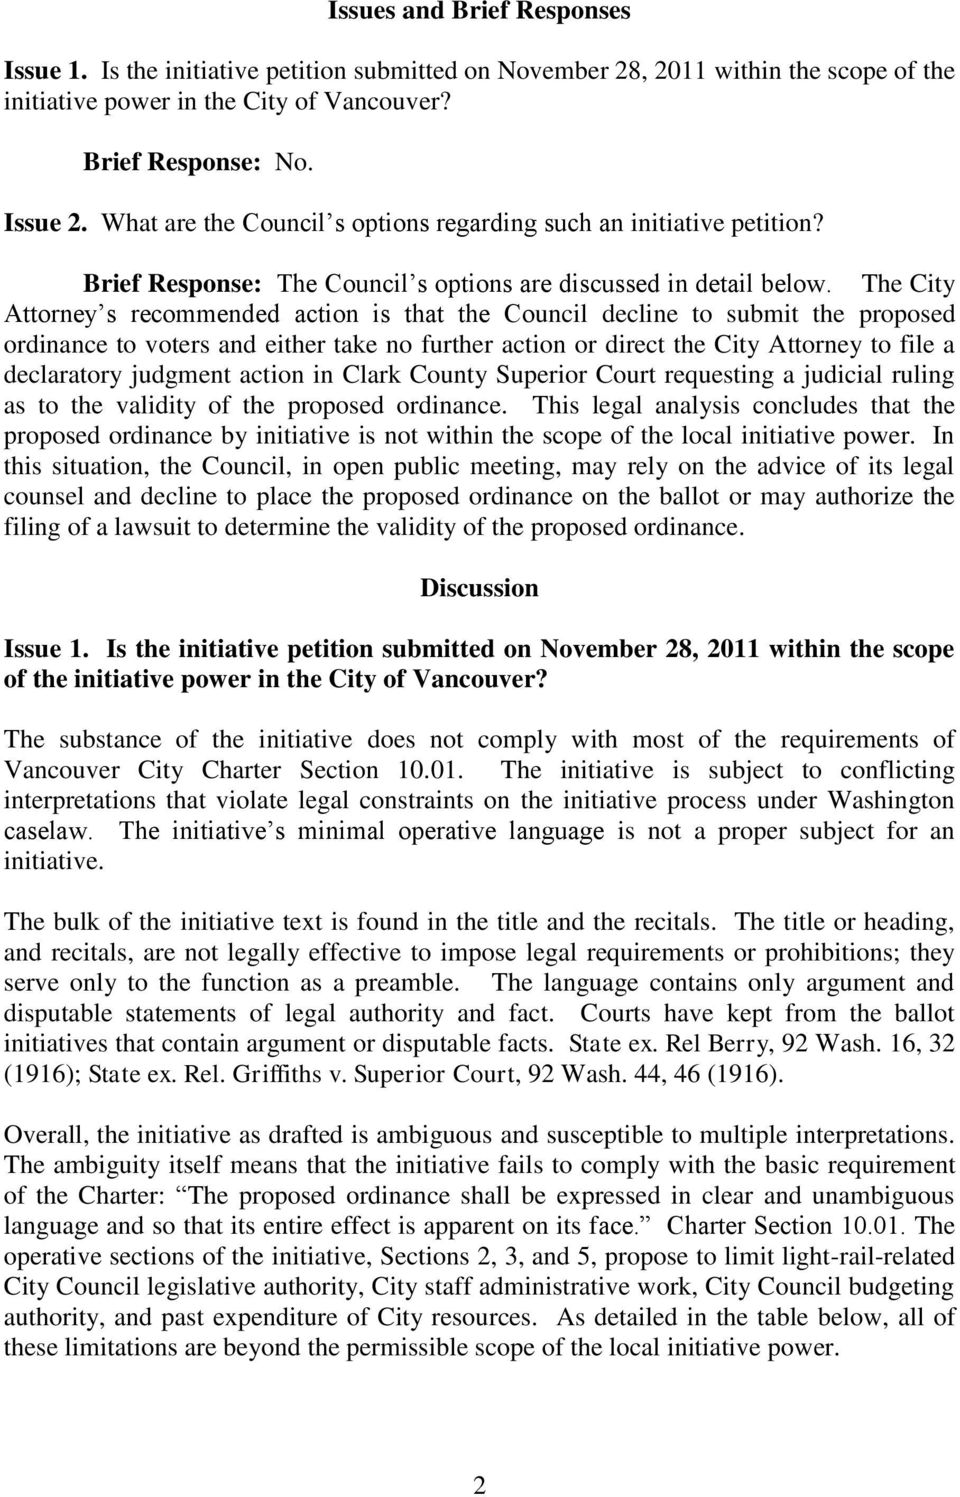 The City Attorney s recommended action is that the Council decline to submit the proposed ordinance to voters and either take no further action or direct the City Attorney to file a declaratory